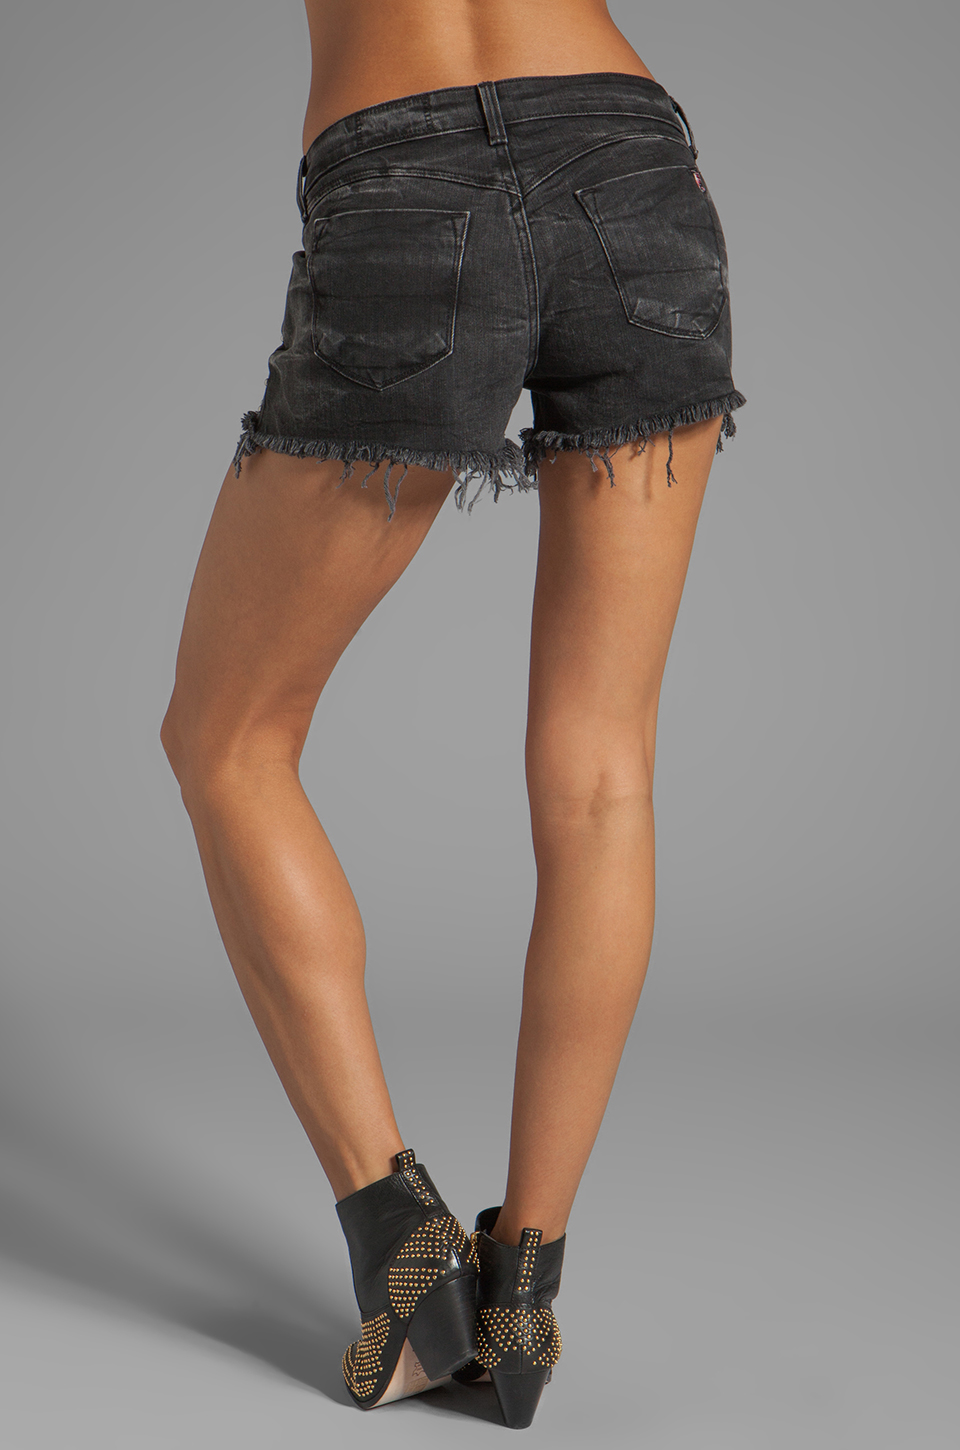 Siwy Alia Cut-Off Shorts in Renegade